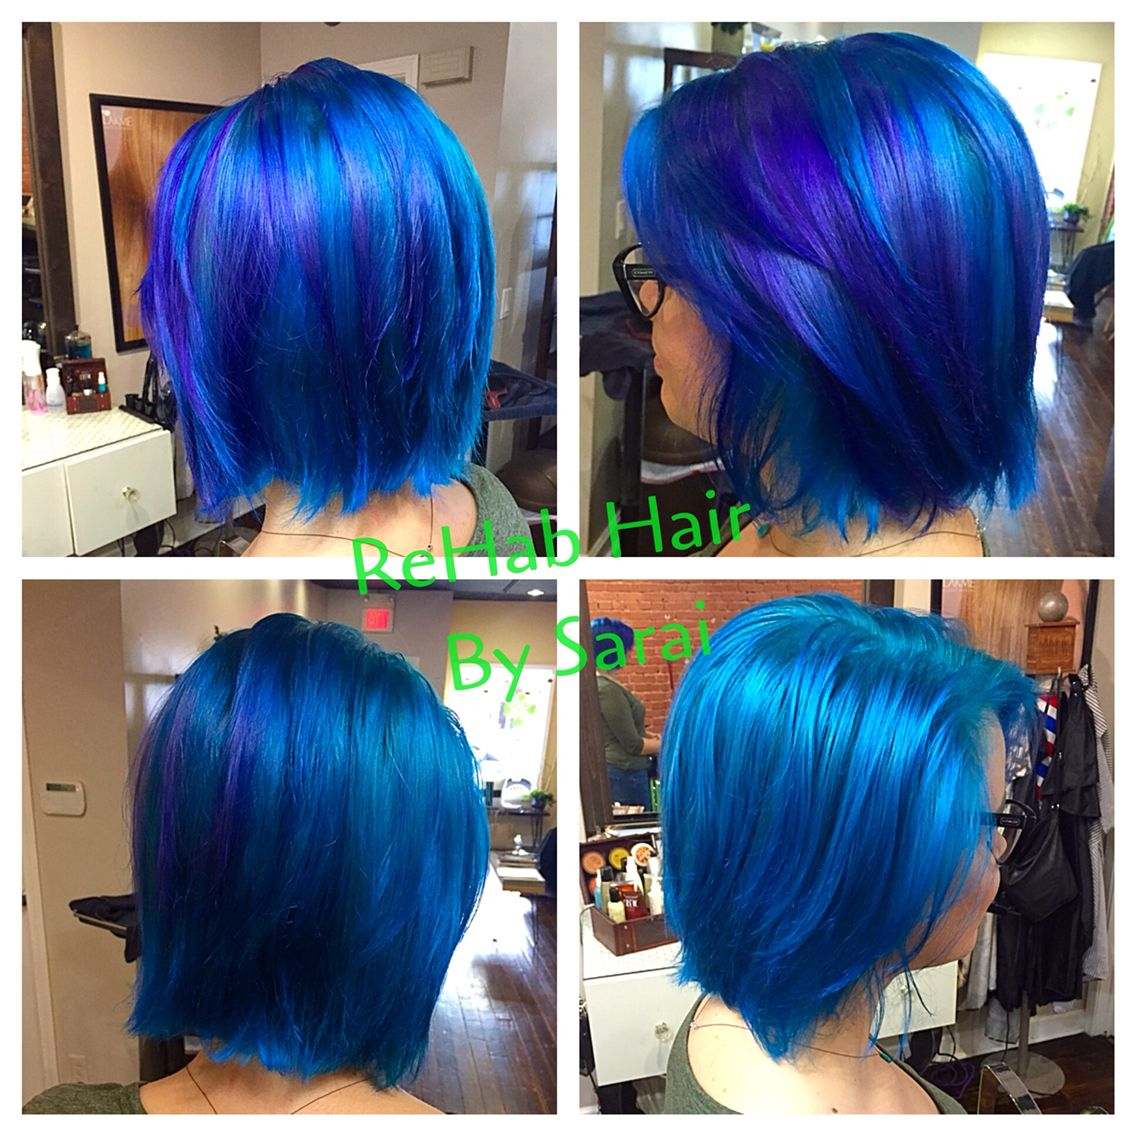 Fun Vibrant Color Thanks To Pravana Locked In And Vivids